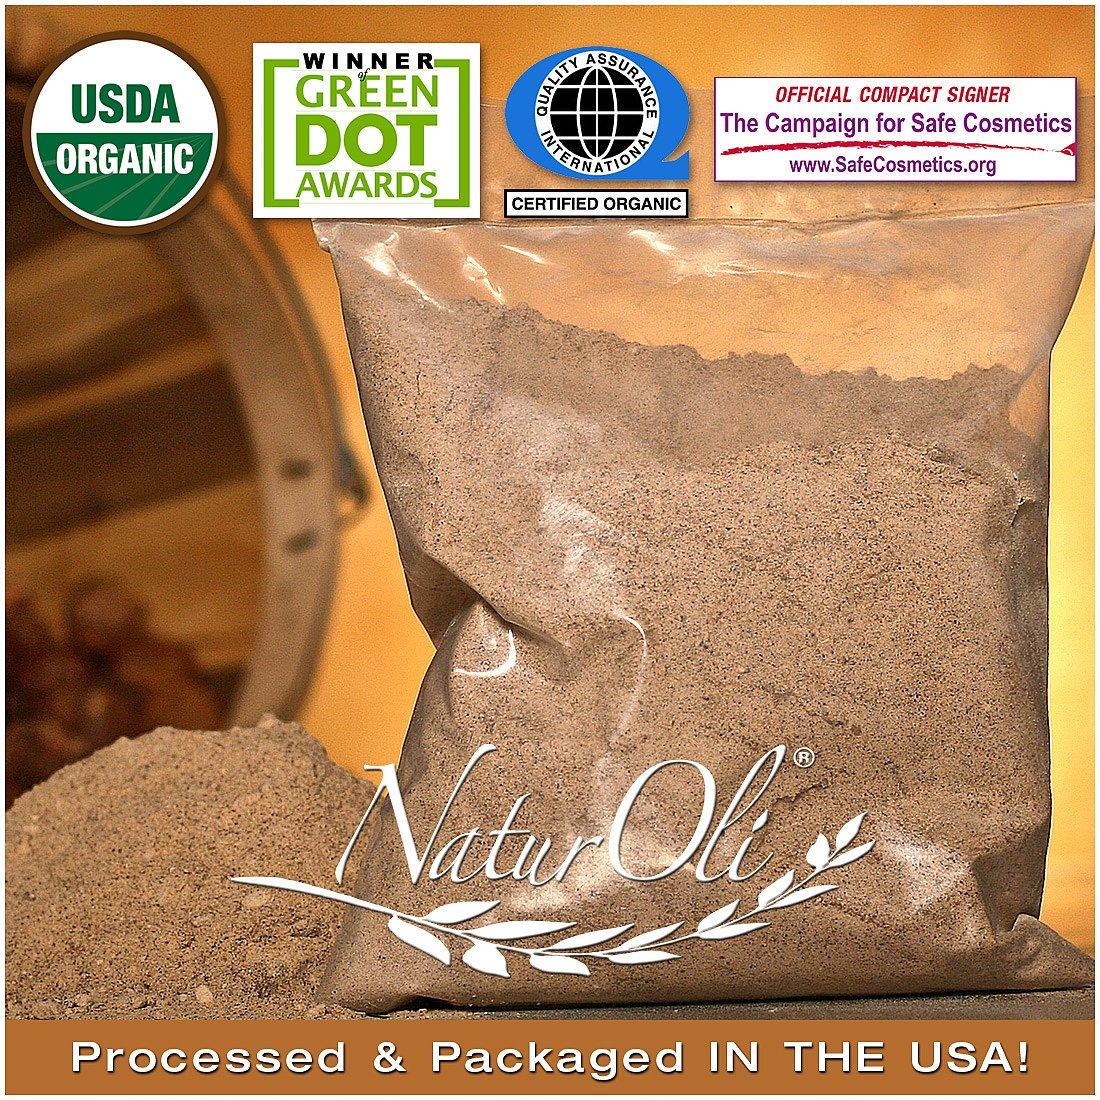 eco friendly hair products - NaturOli USDA Organic Laundry Soap